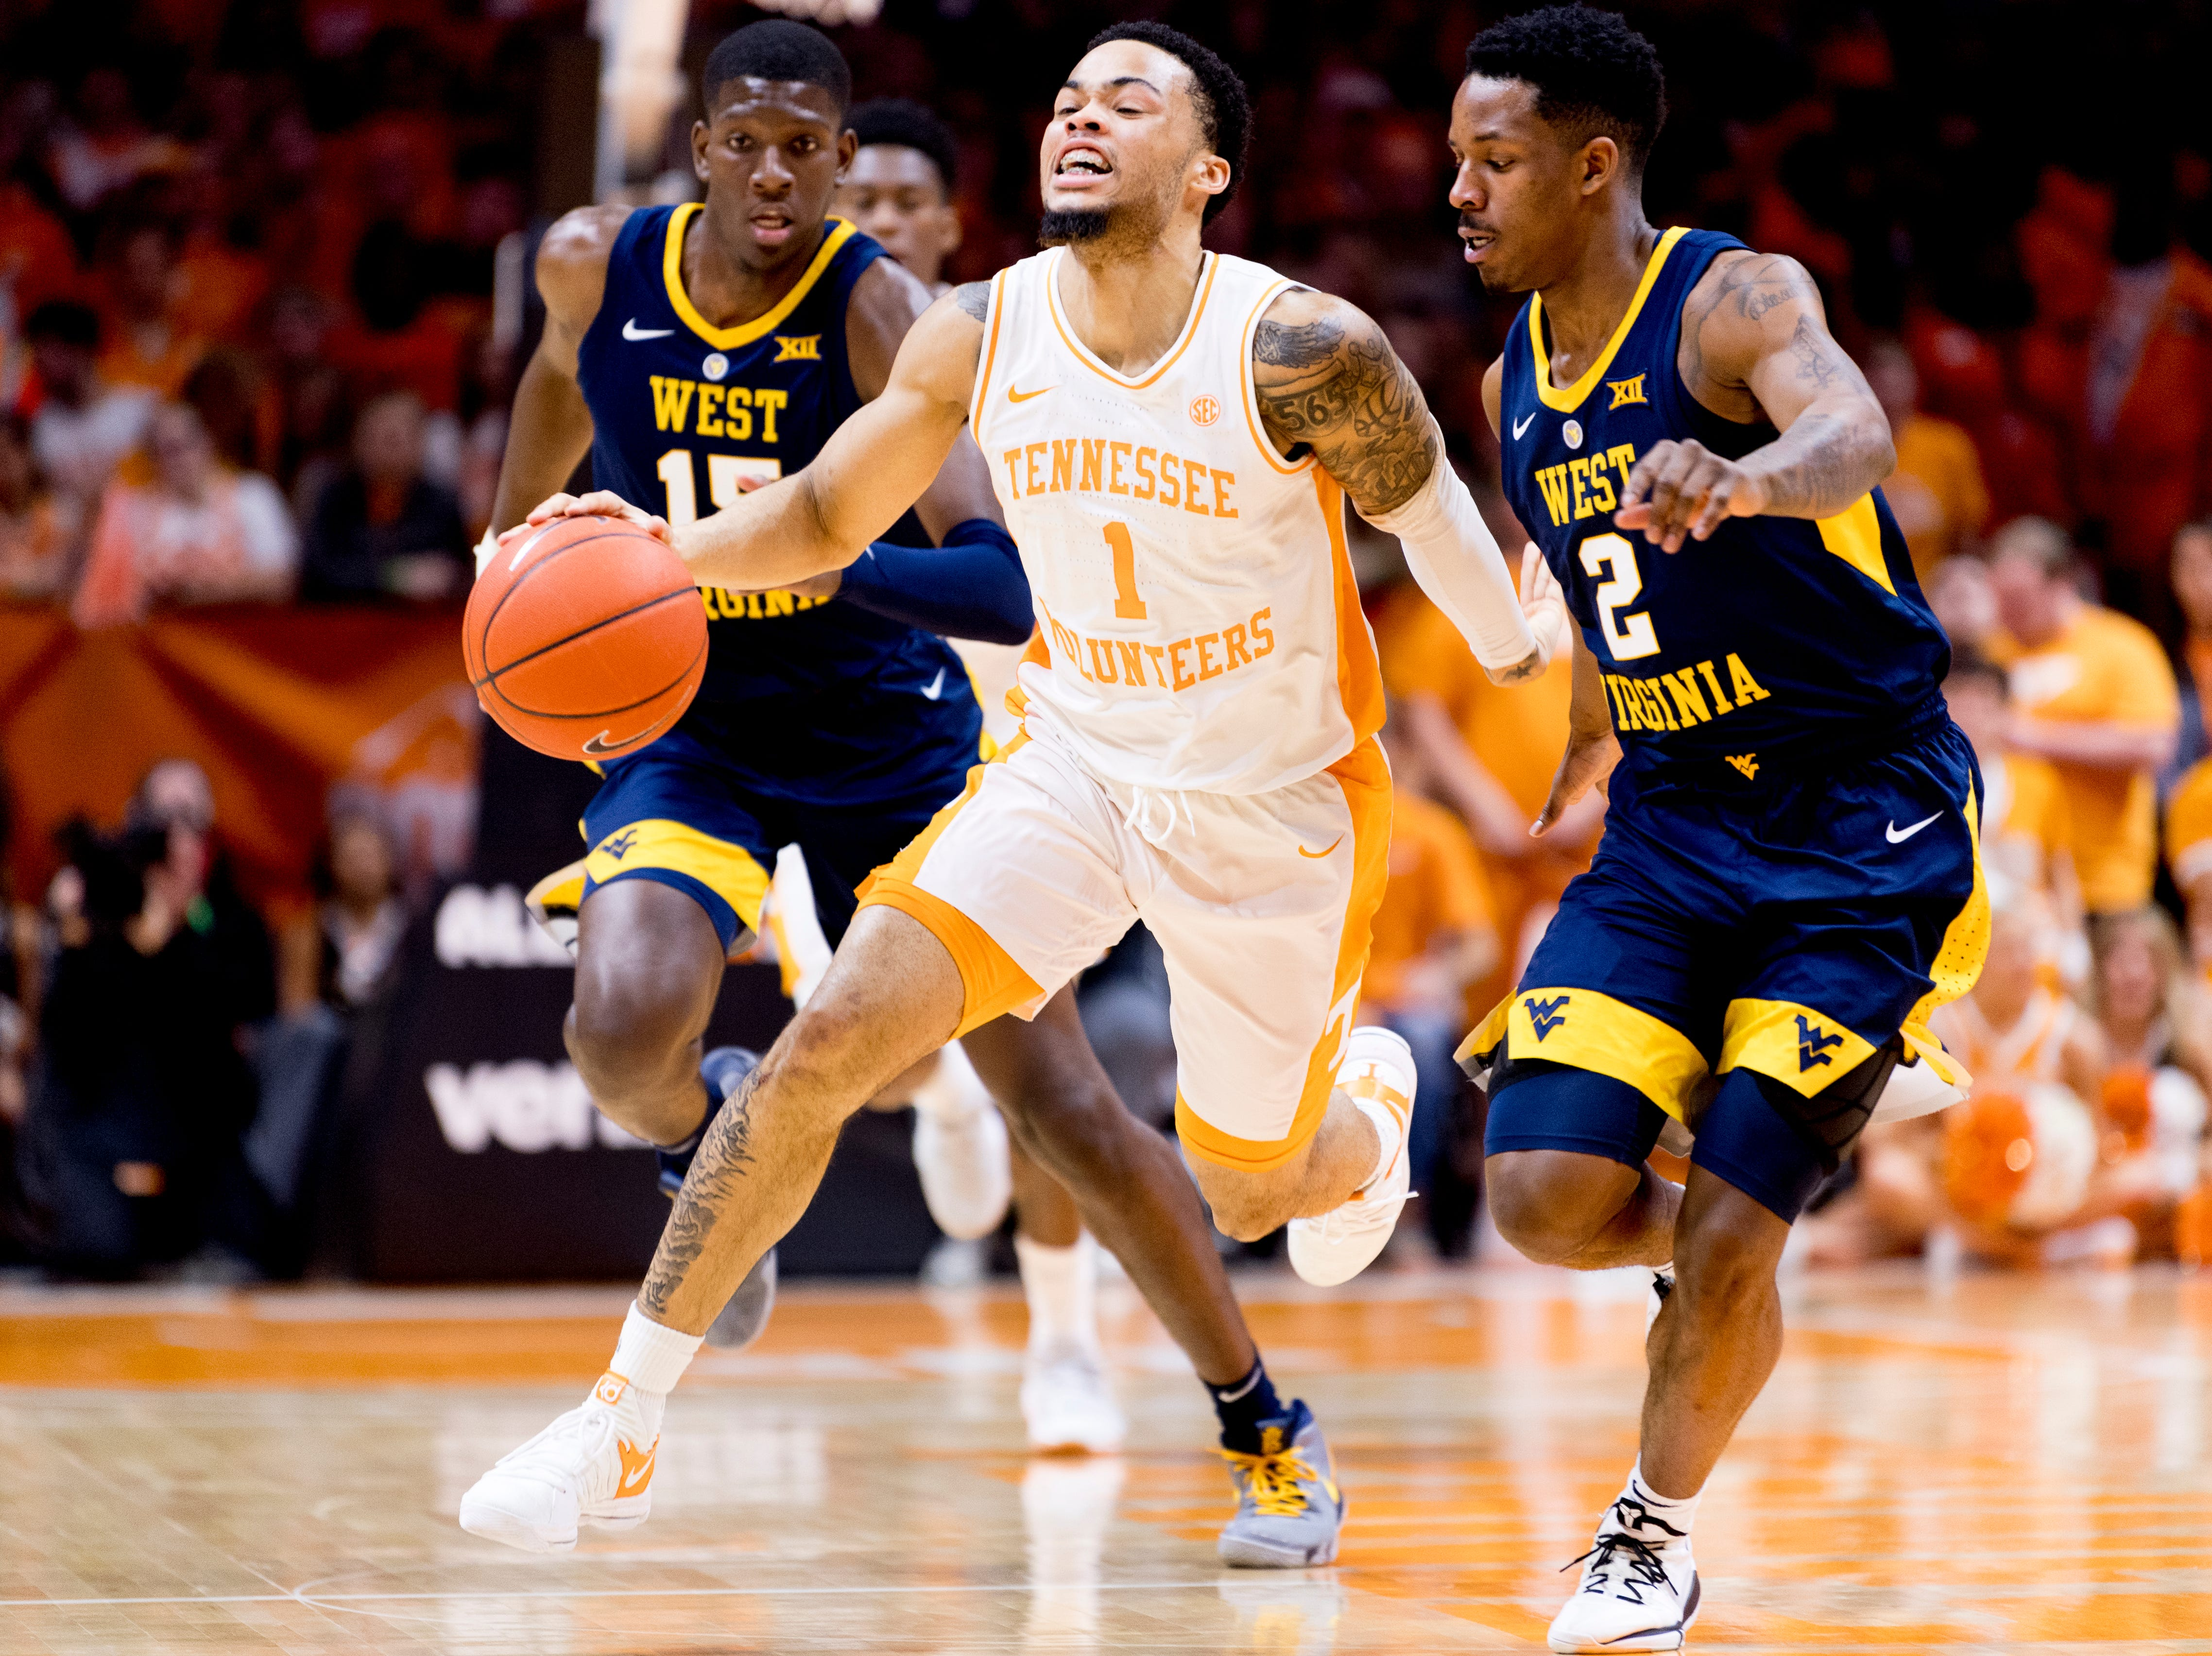 Tennessee guard Lamonte Turner (1) dribbles down the court as West Virginia guard Brandon Knapper (2) and West Virginia forward Lamont West (15) defend during a SEC/Big 12 Challenge game between Tennessee and West Virginia at Thompson-Boling Arena in Knoxville, Tennessee on Saturday, January 26, 2019.